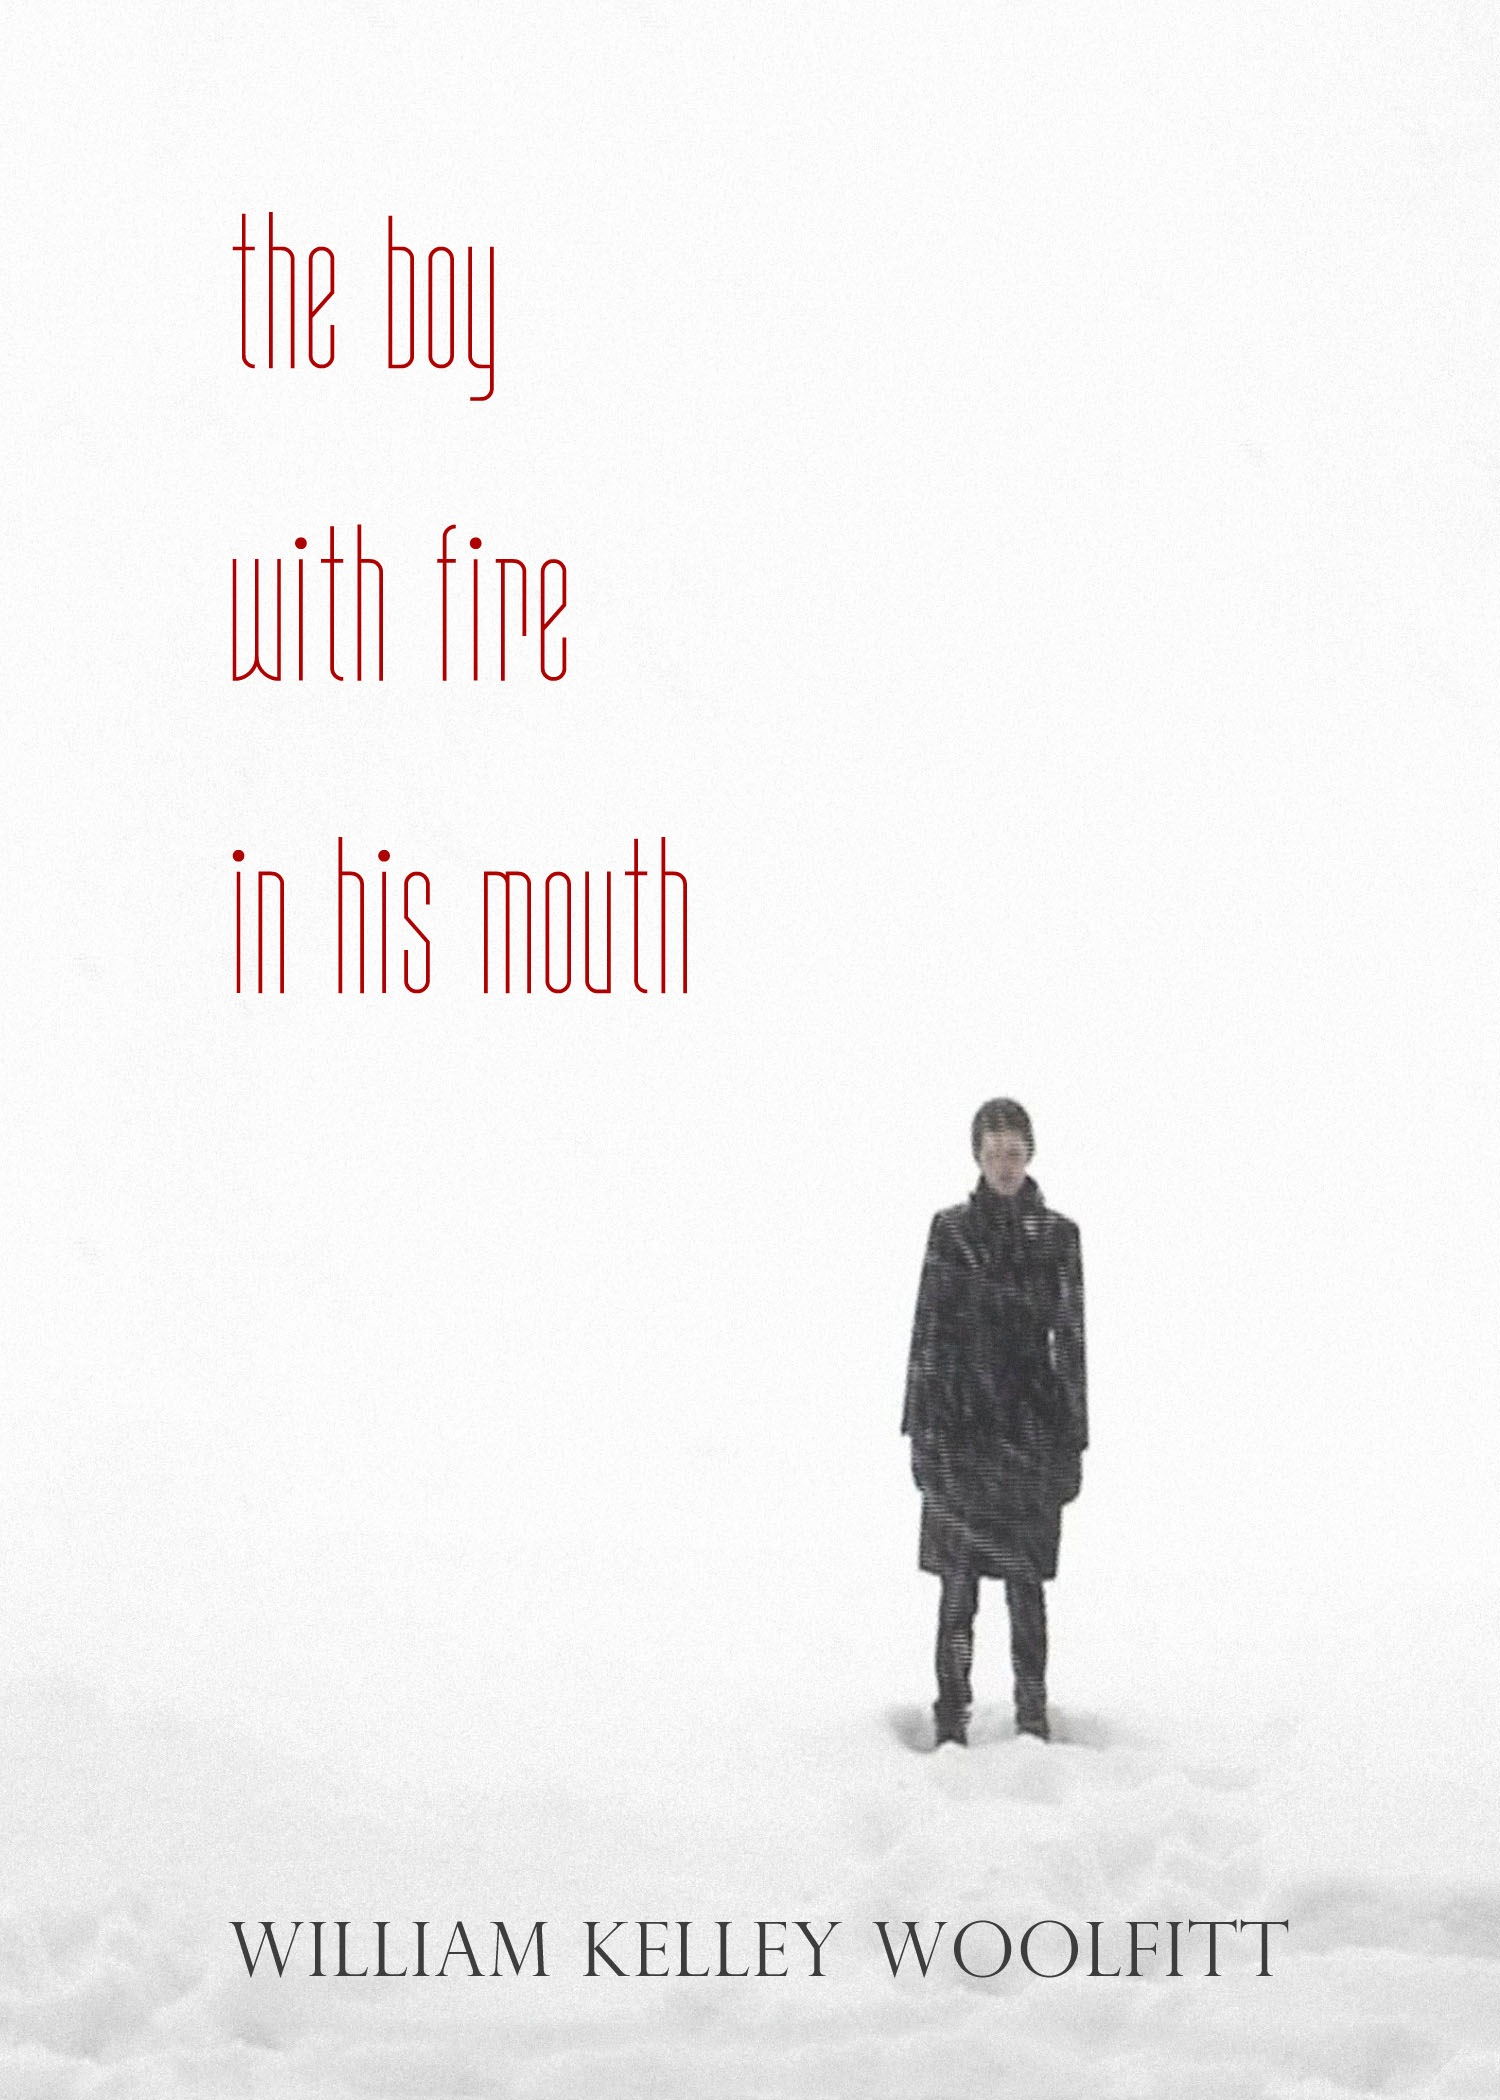 The Boy with Fire in His Mouth (Epiphany Editions) 2014.  Order here .